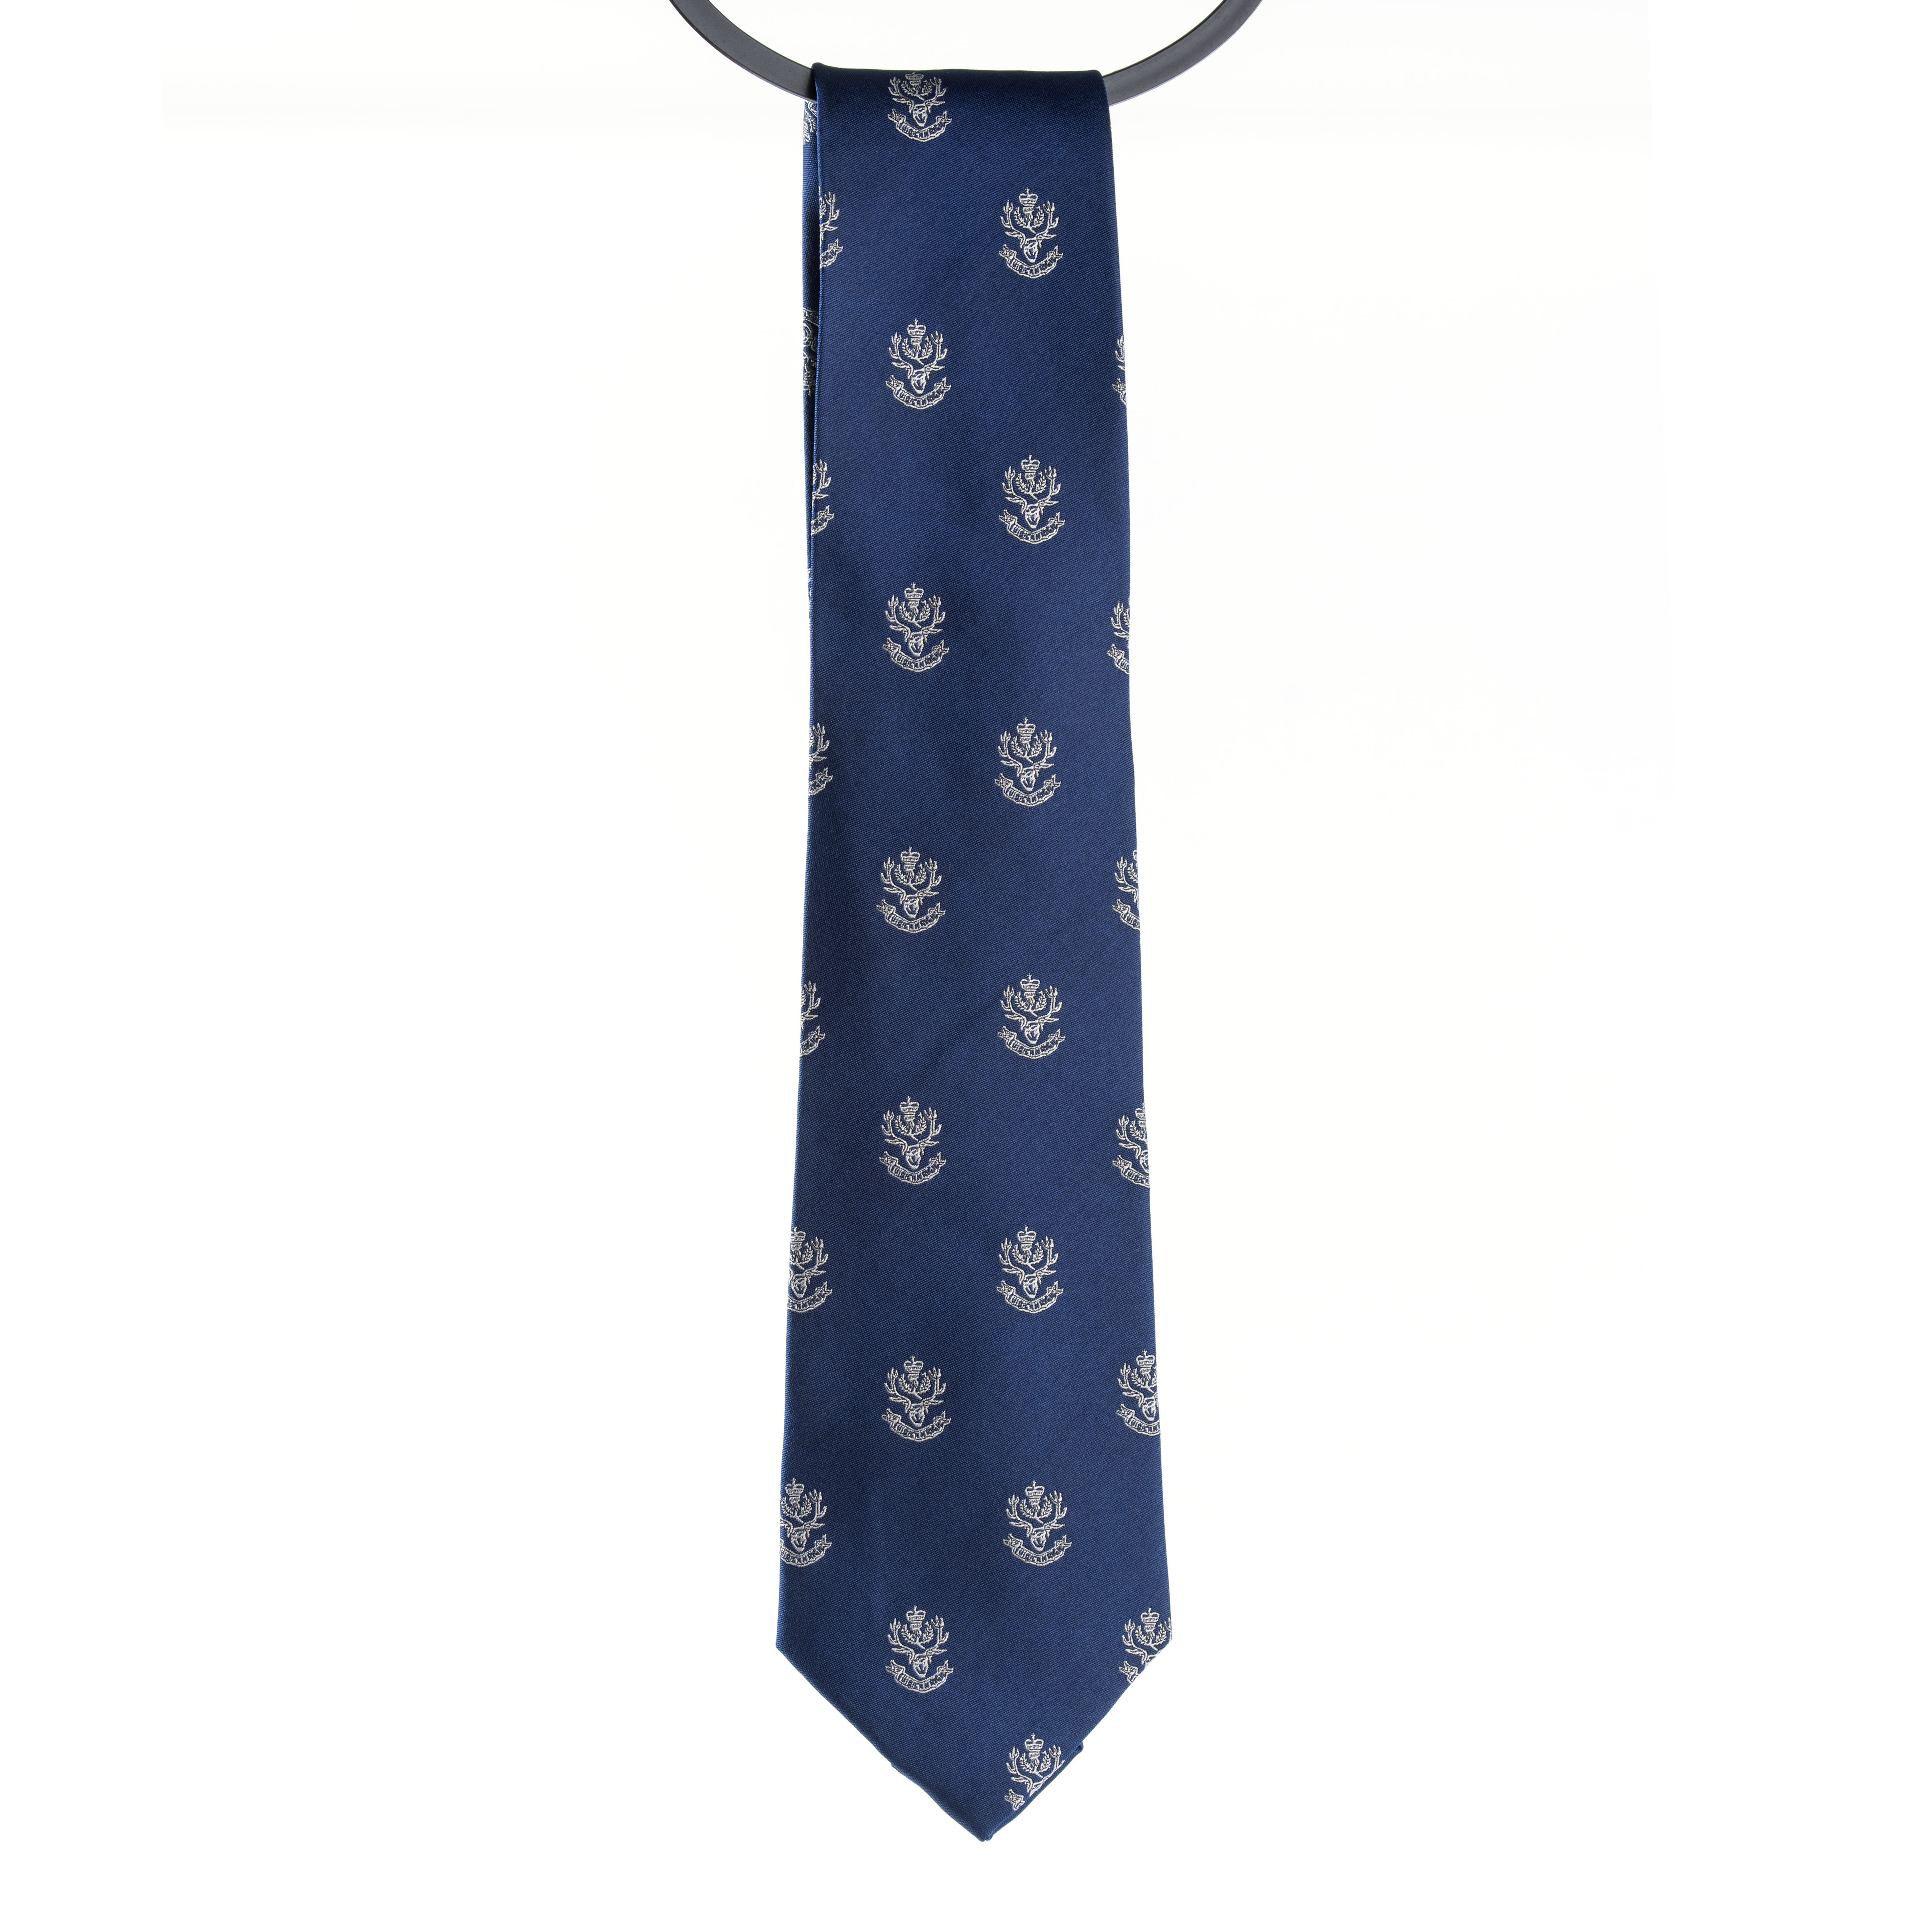 Hector Stag Tie